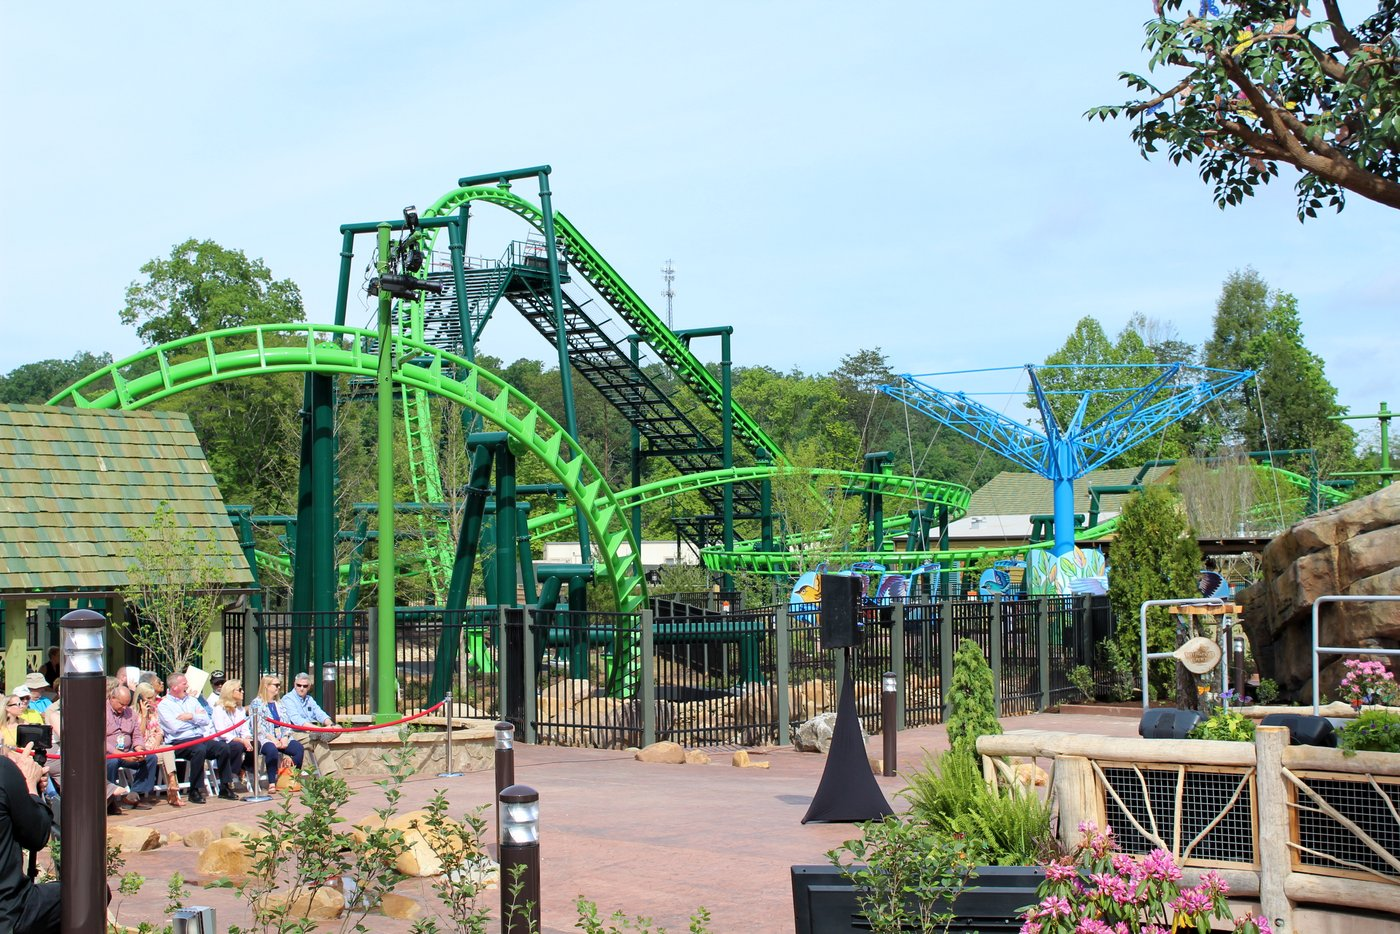 Wildwood Grove Opens at Dollywood - Coaster101